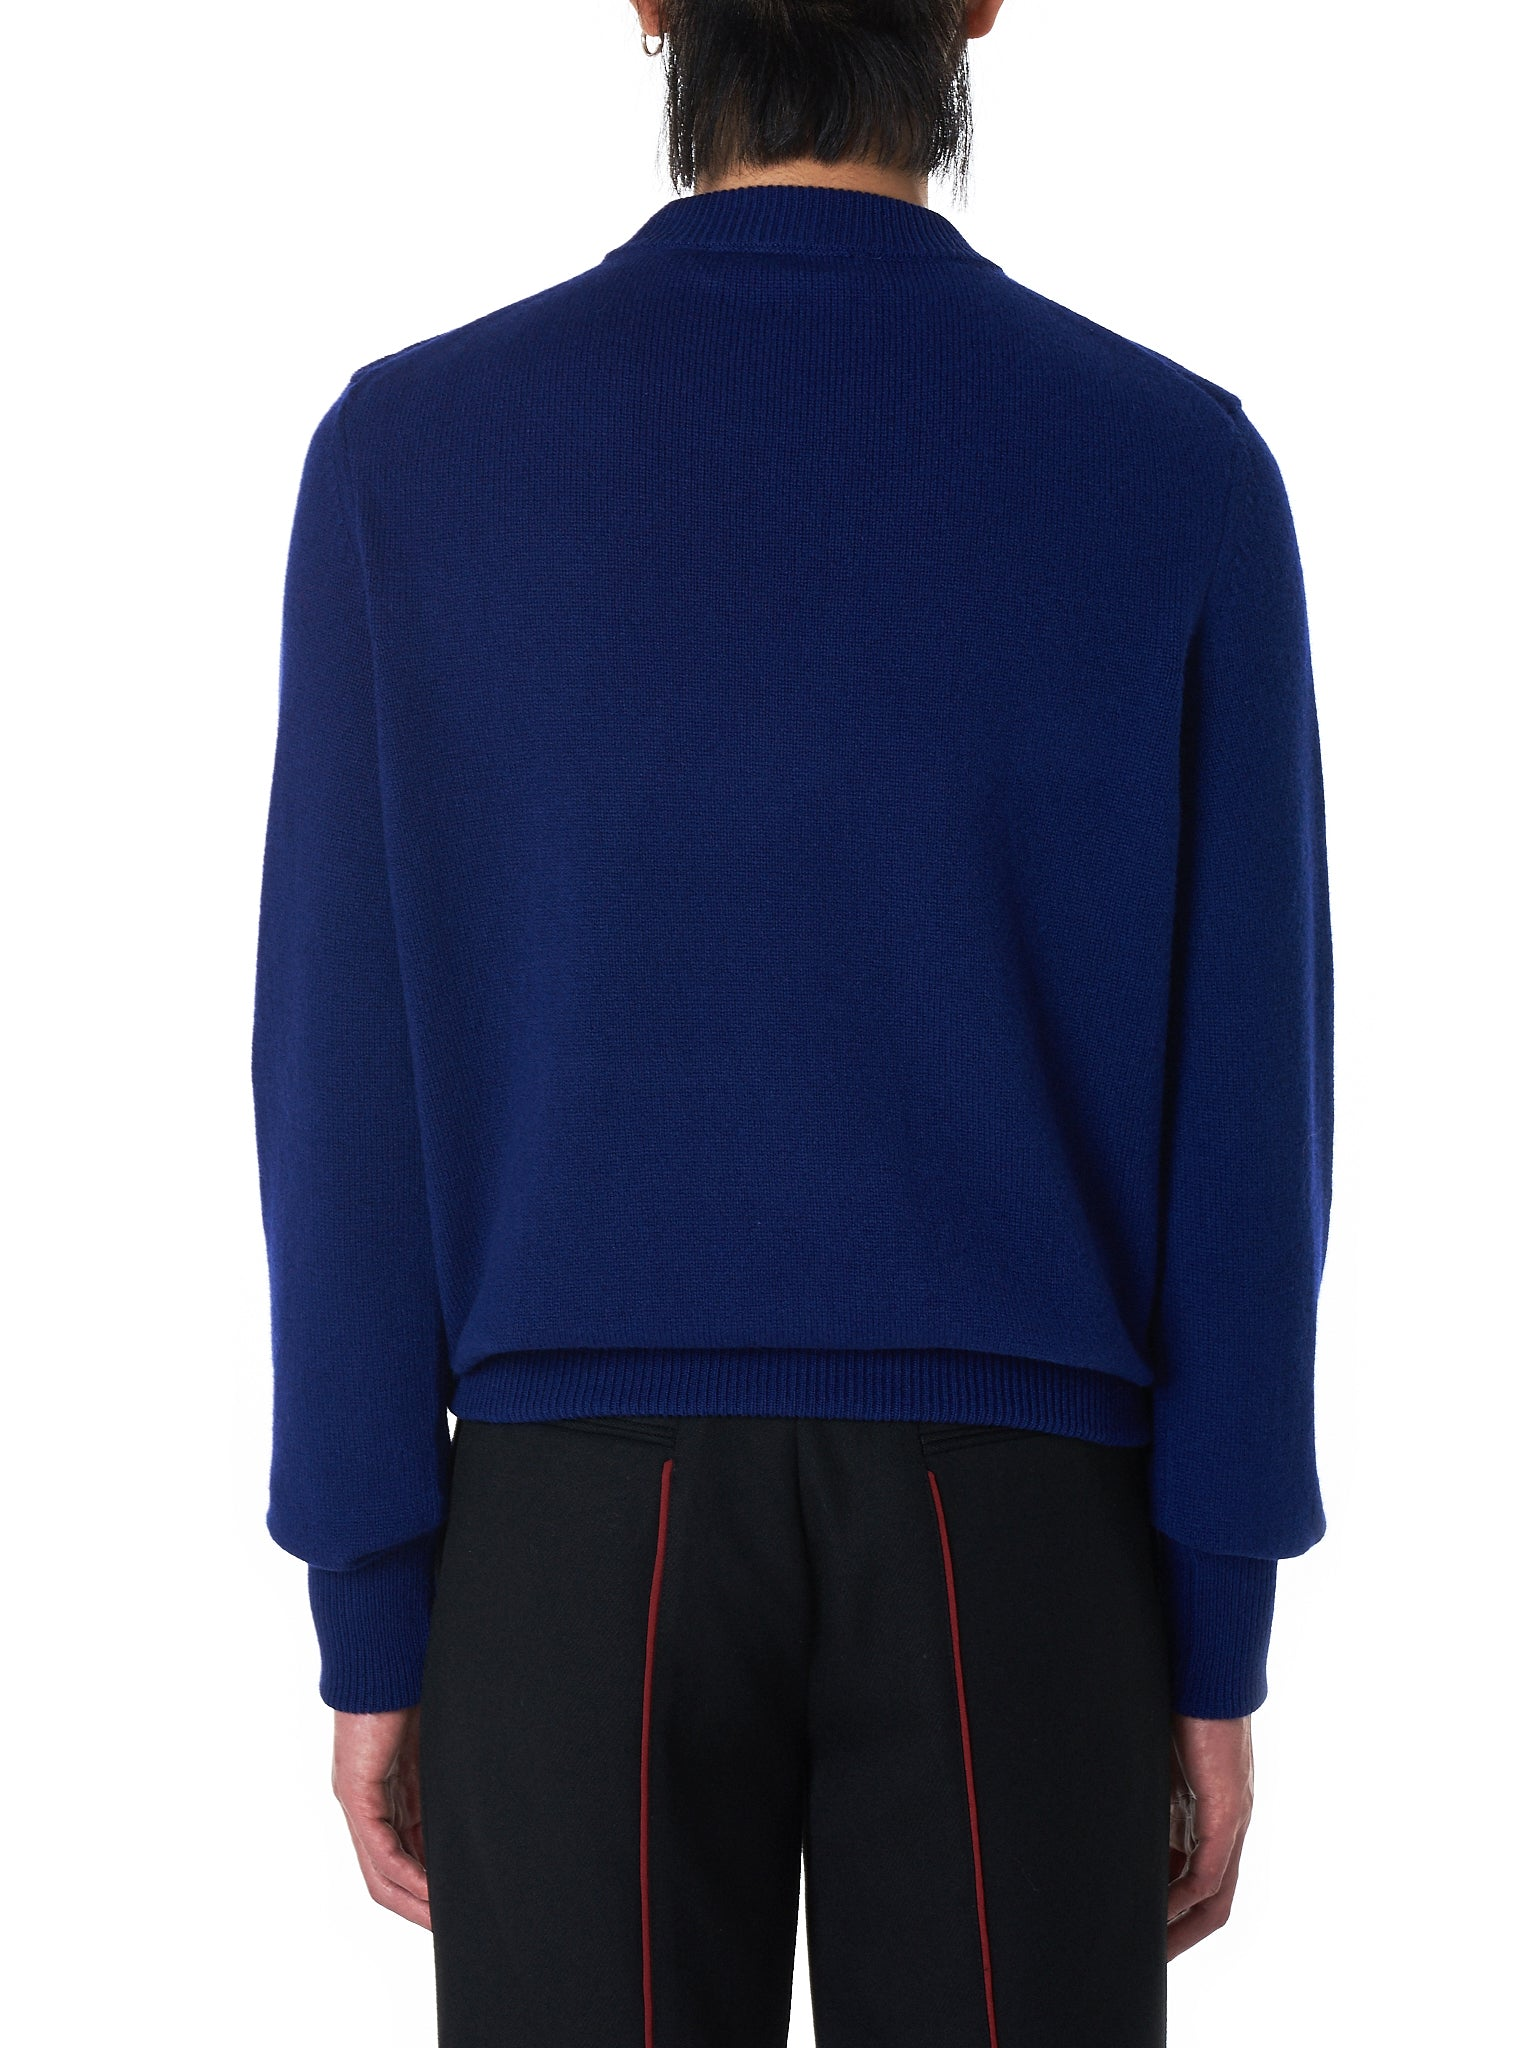 Namacheko Sweater - Hlorenzo Back